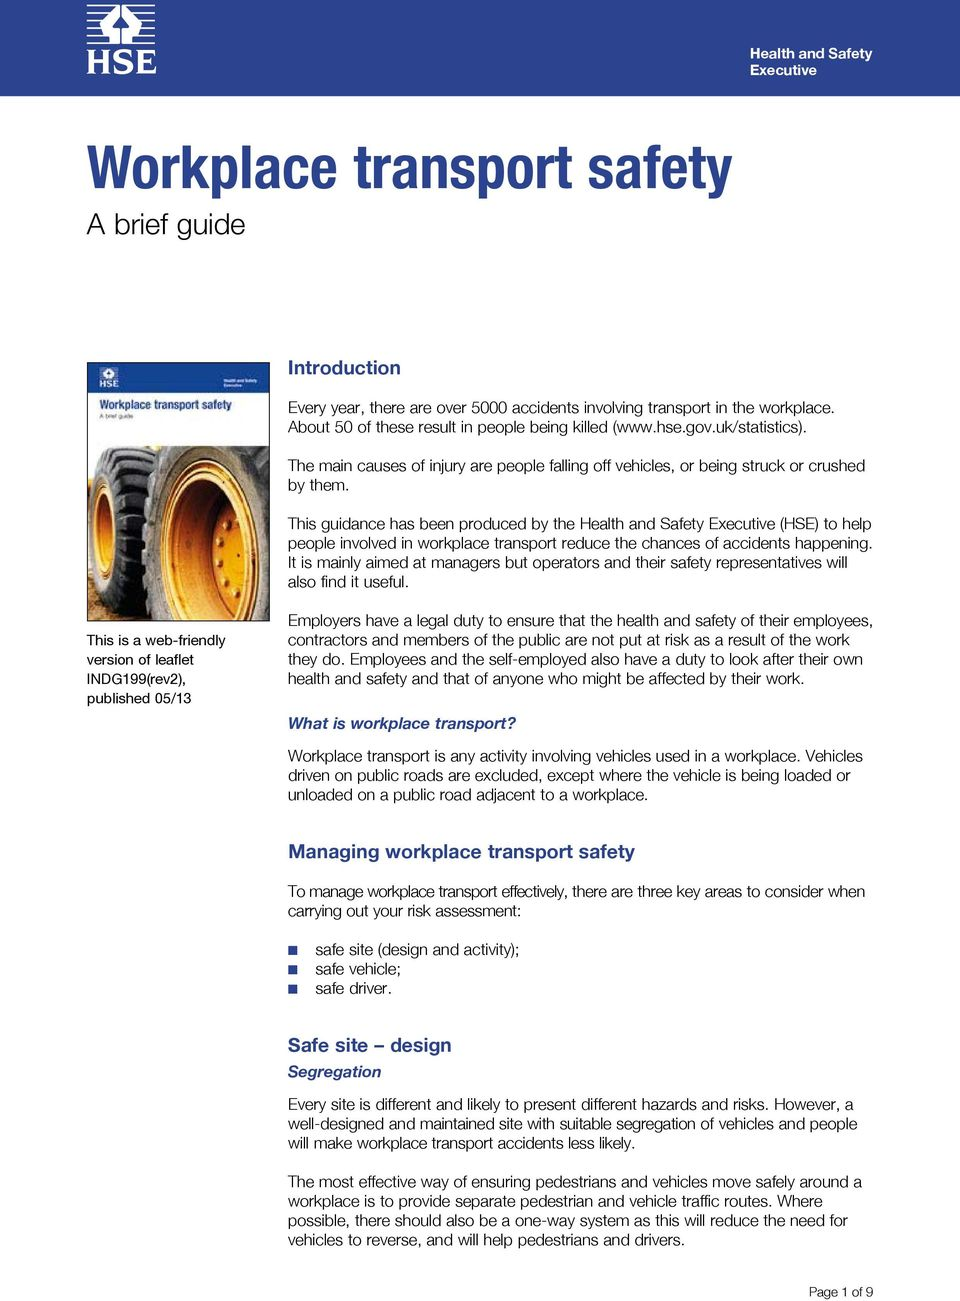 This guidance has been produced by the Health and Safety (HSE) to help people involved in workplace transport reduce the chances of accidents happening.